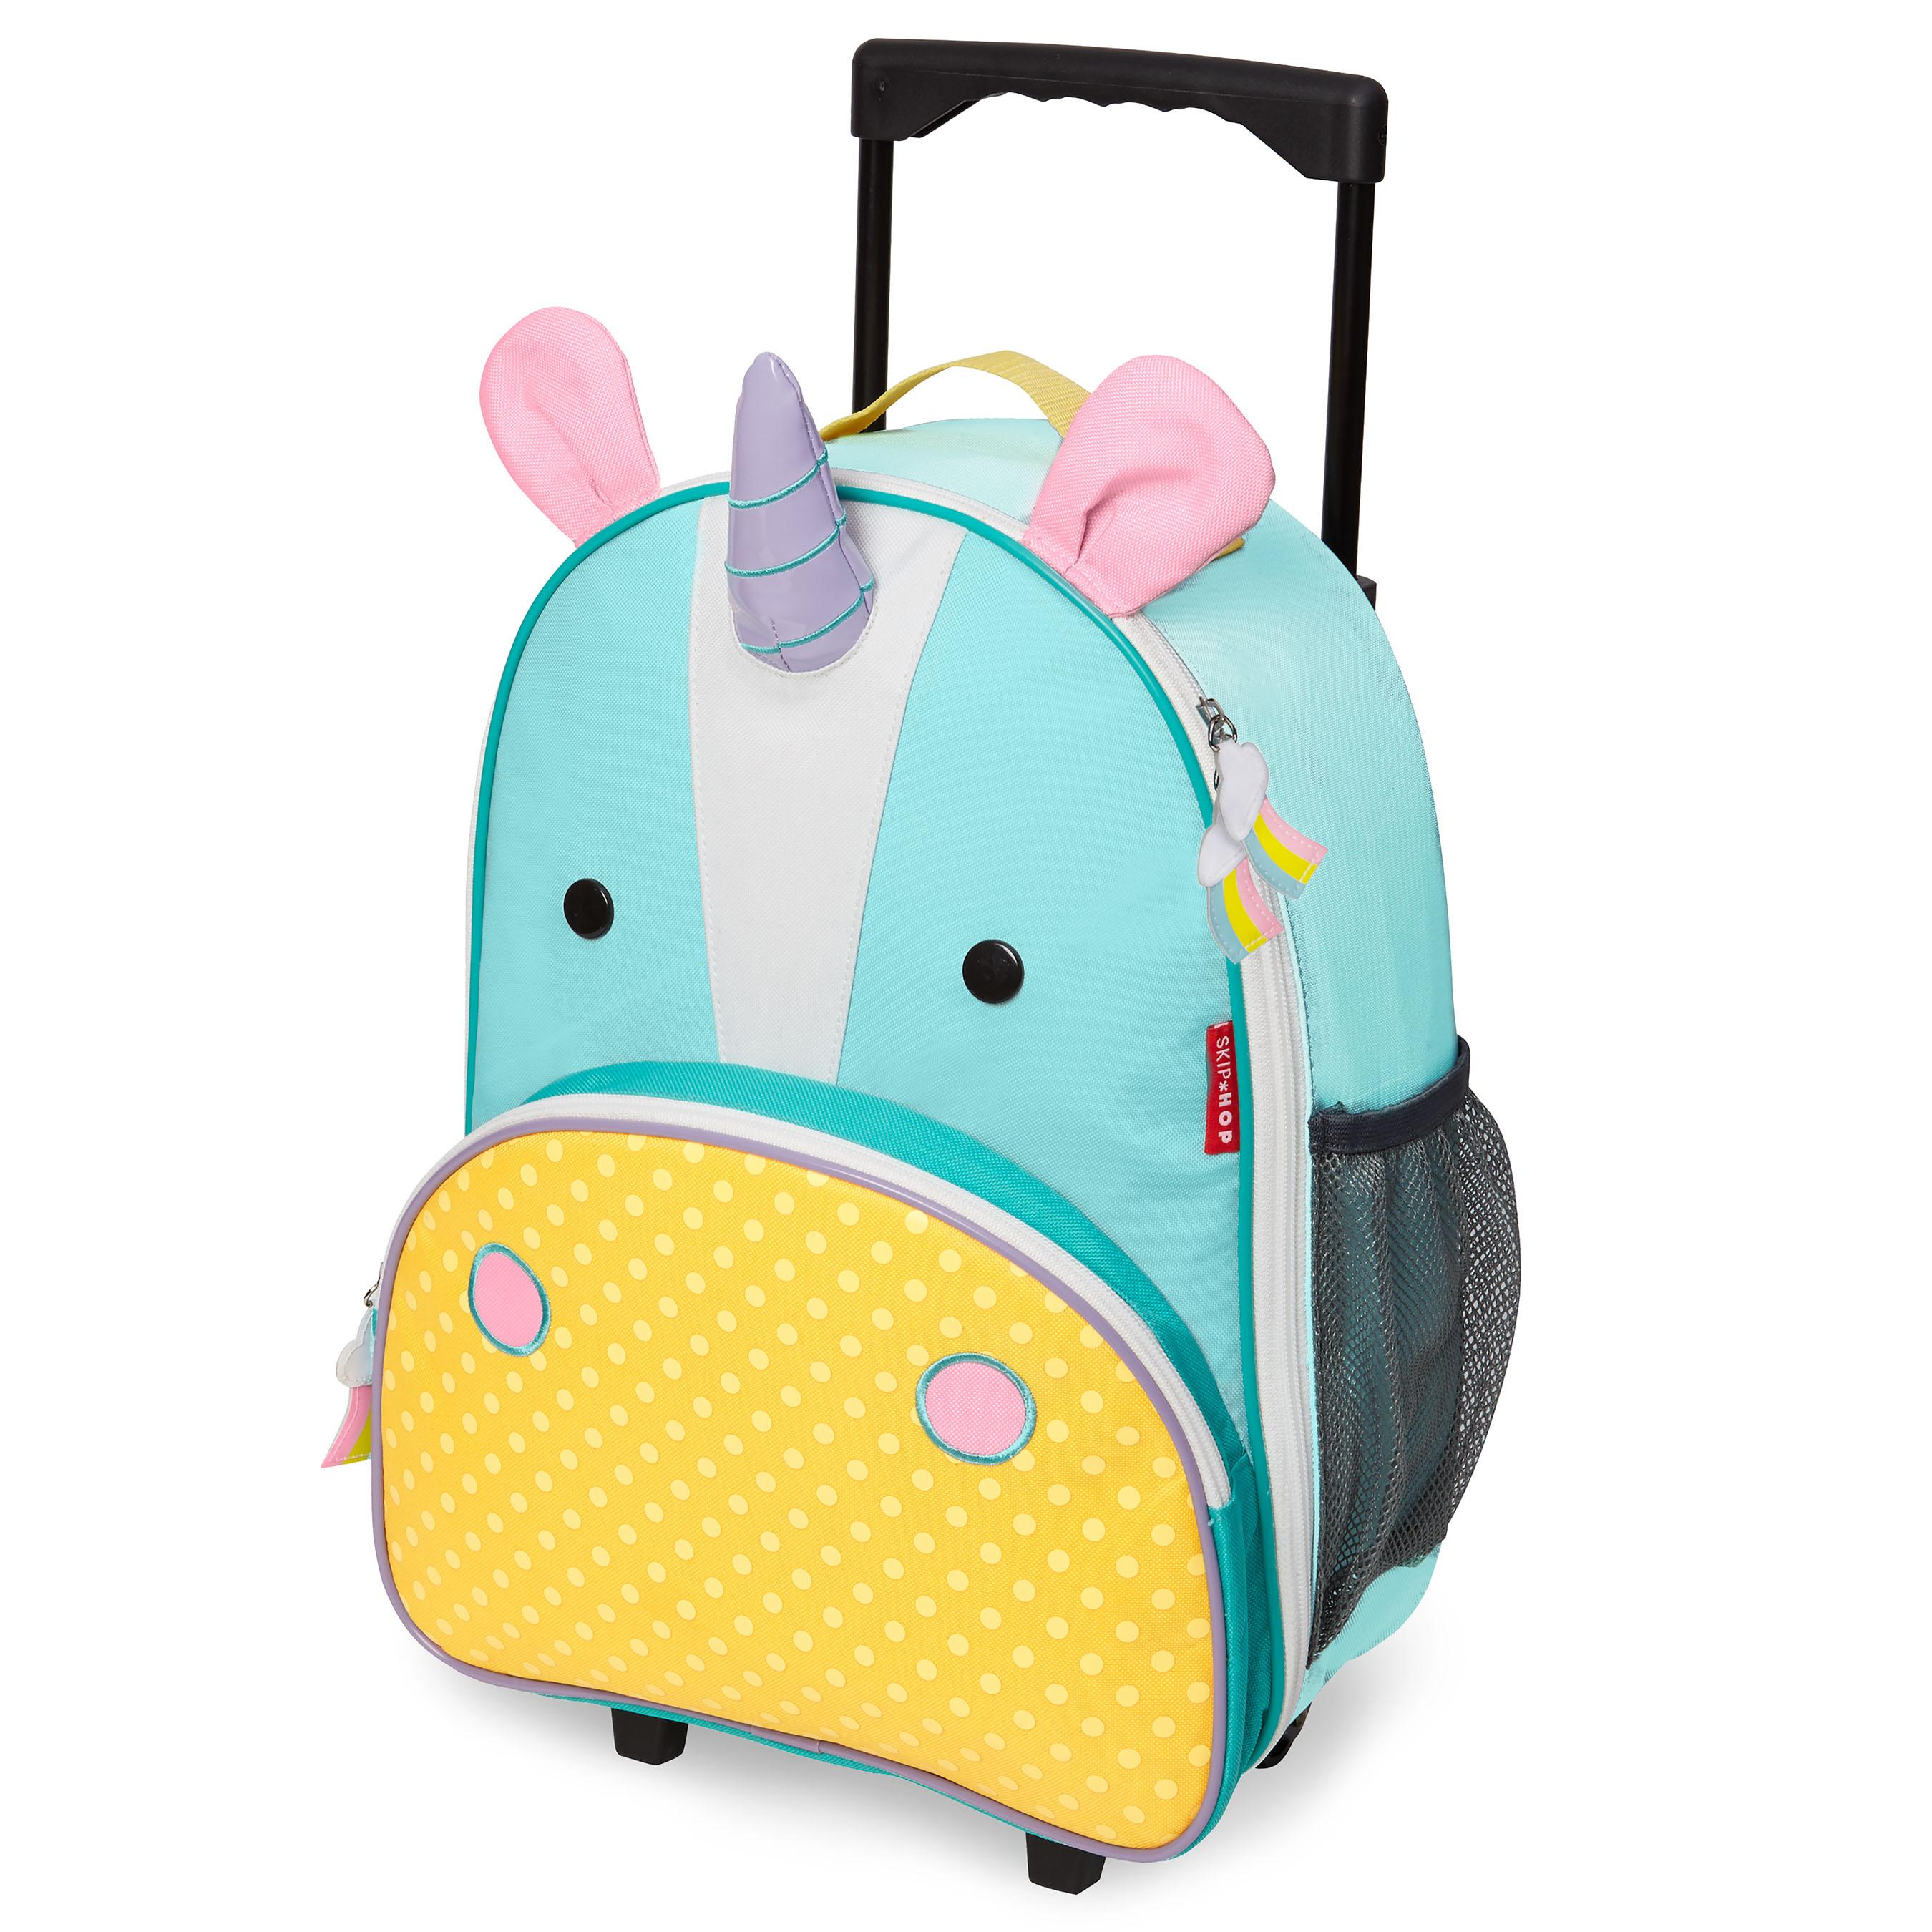 Skip Hop Zoo Luggage - Unicorn By Mothercare Philippines.